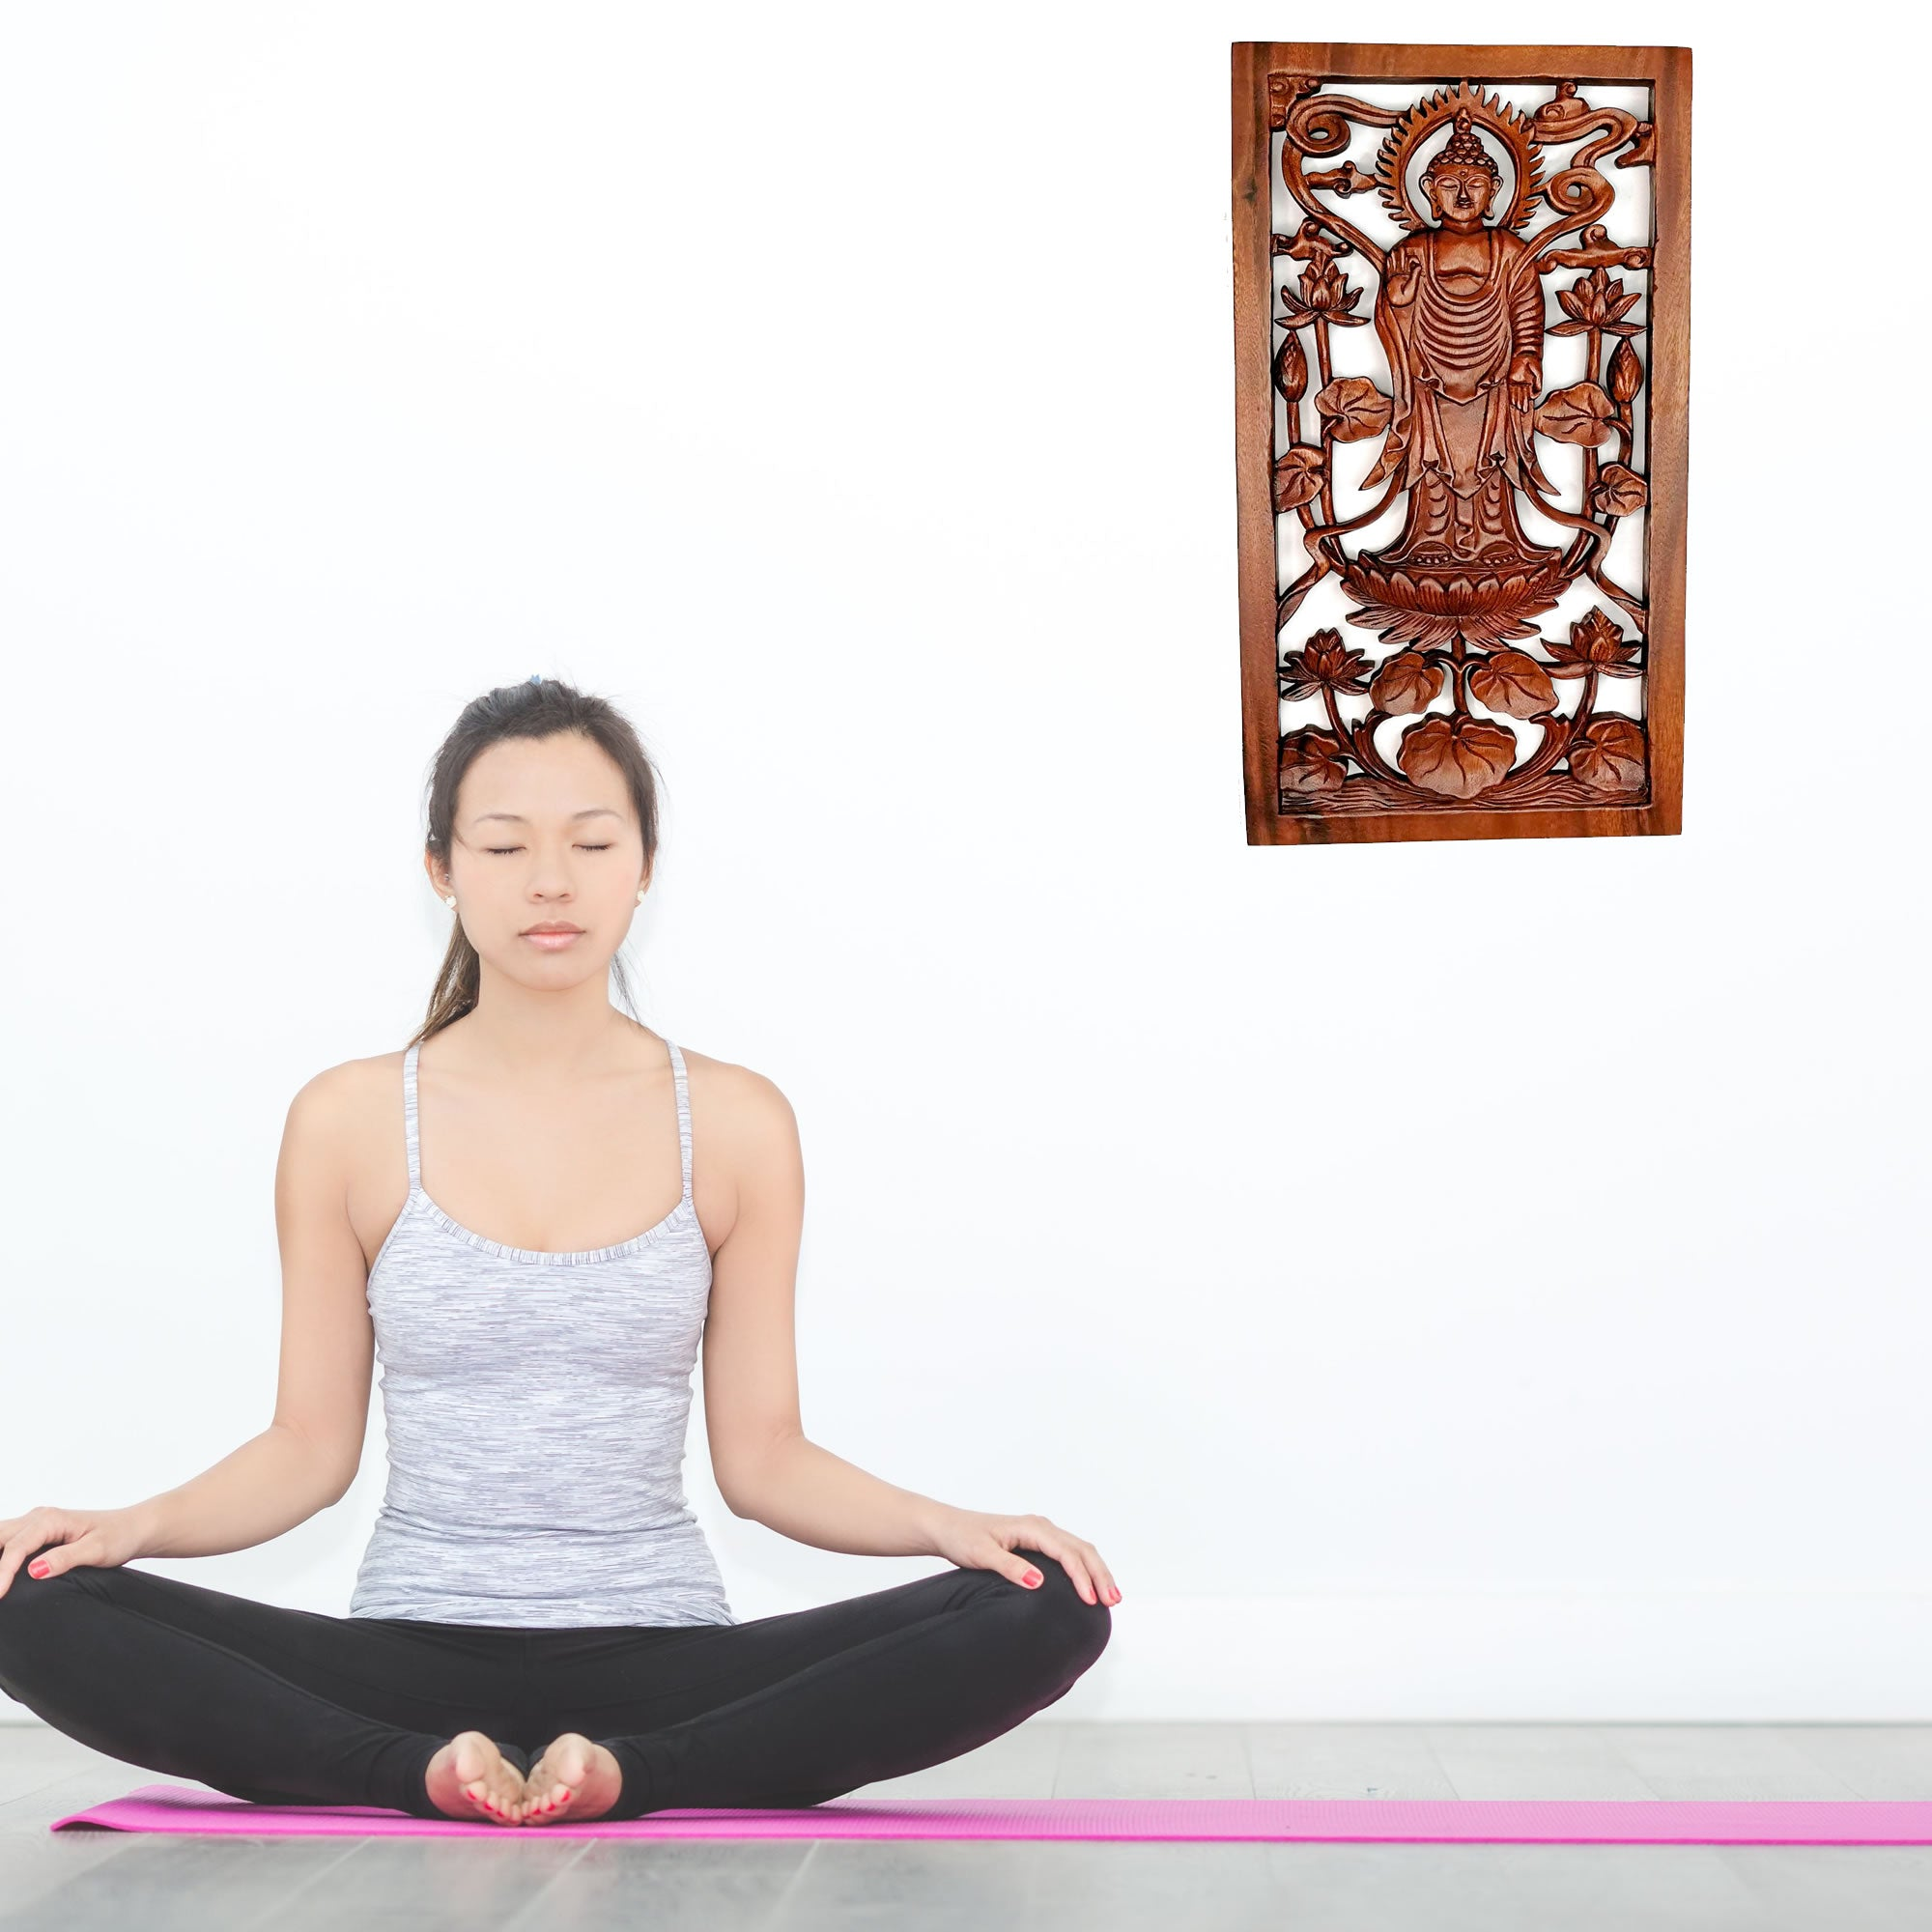 Hand Carved Wooden Decorative Panel Standing Buddha Peace Yoga Meditation